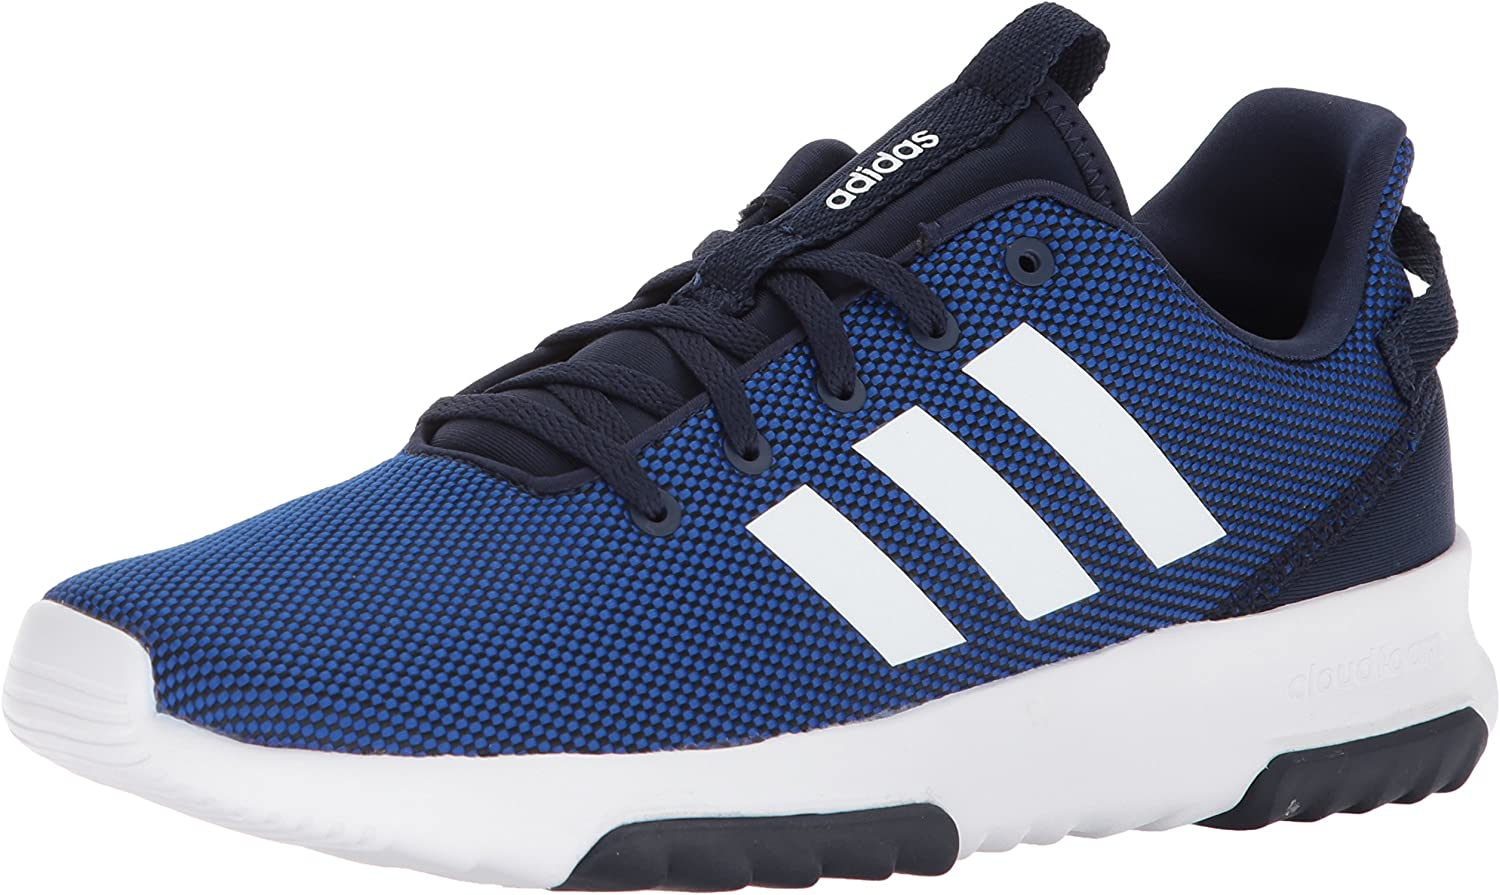 Adidas Neo Men's CF Racer TR, Collegiate Royal White Collegiate Navy, 5 M US